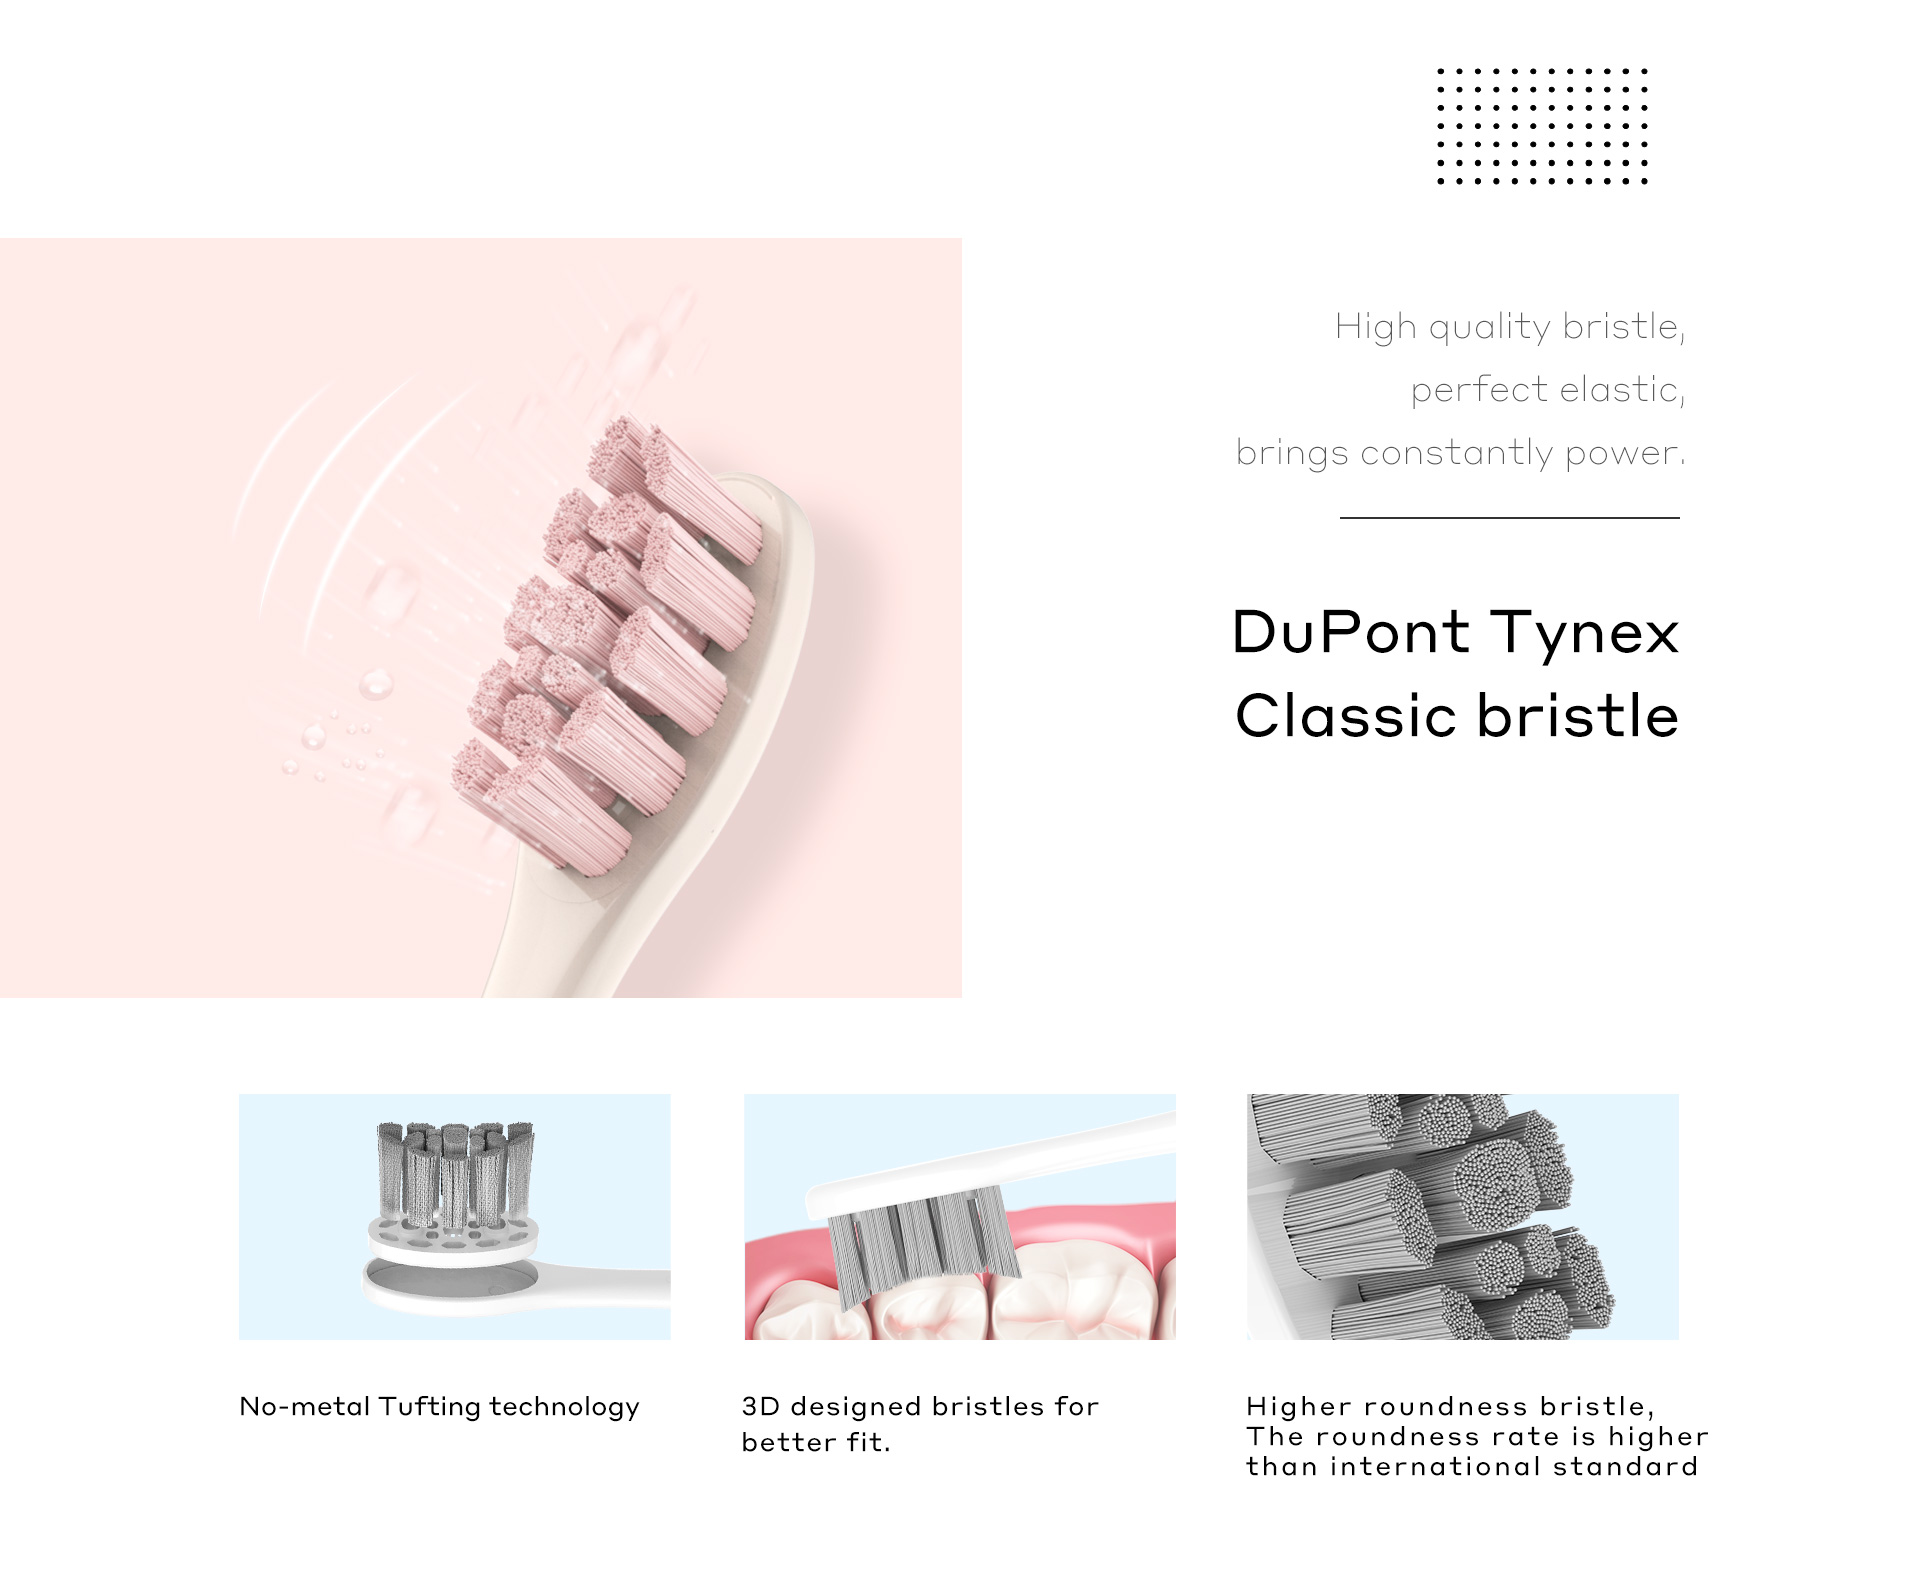 dupont tynex classic bristle no=metal tufting technology 3D designed bristles